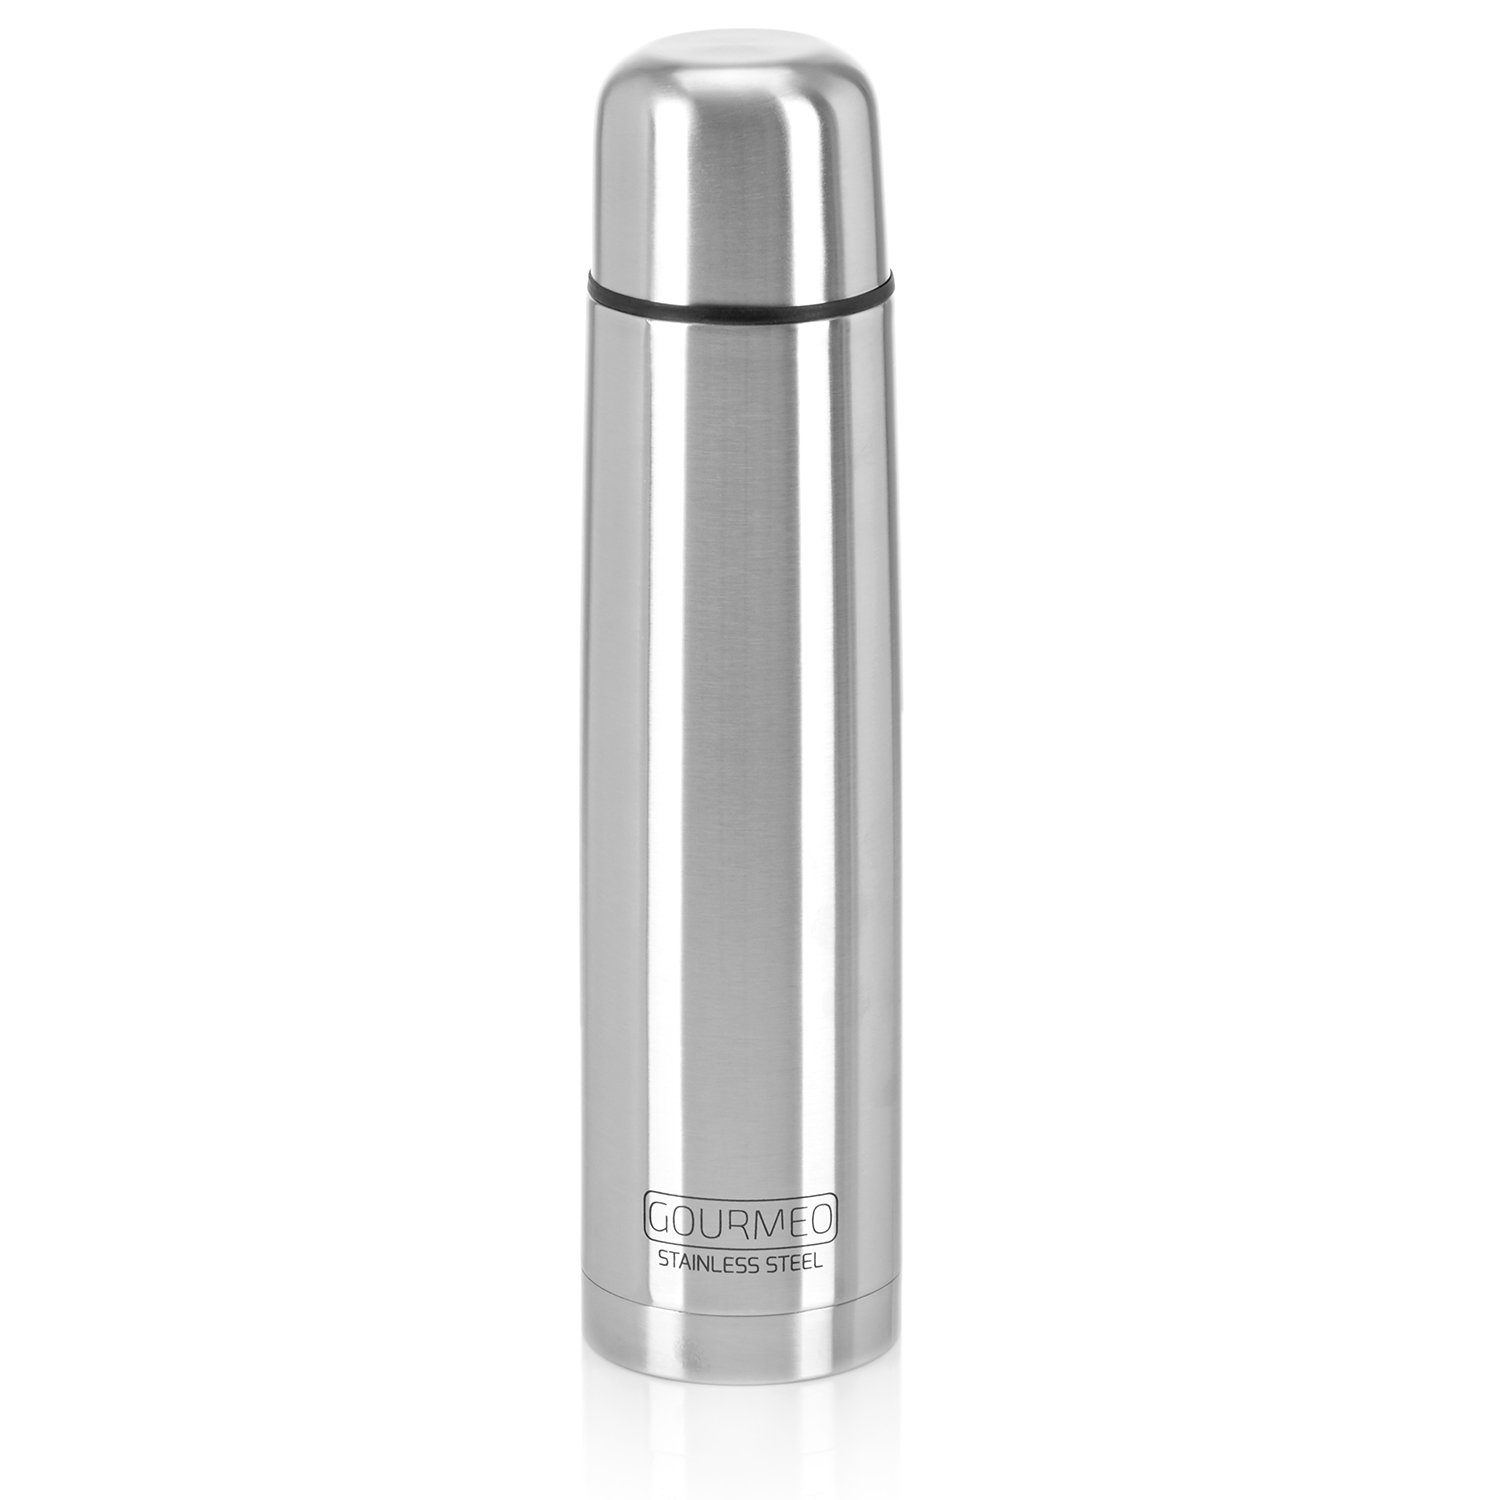 GOURMEO Vacuum Flask, 1 L, Stainless Steel, Double-Walled, with Push Button Closure | Thermos Flask eSpring GmbH